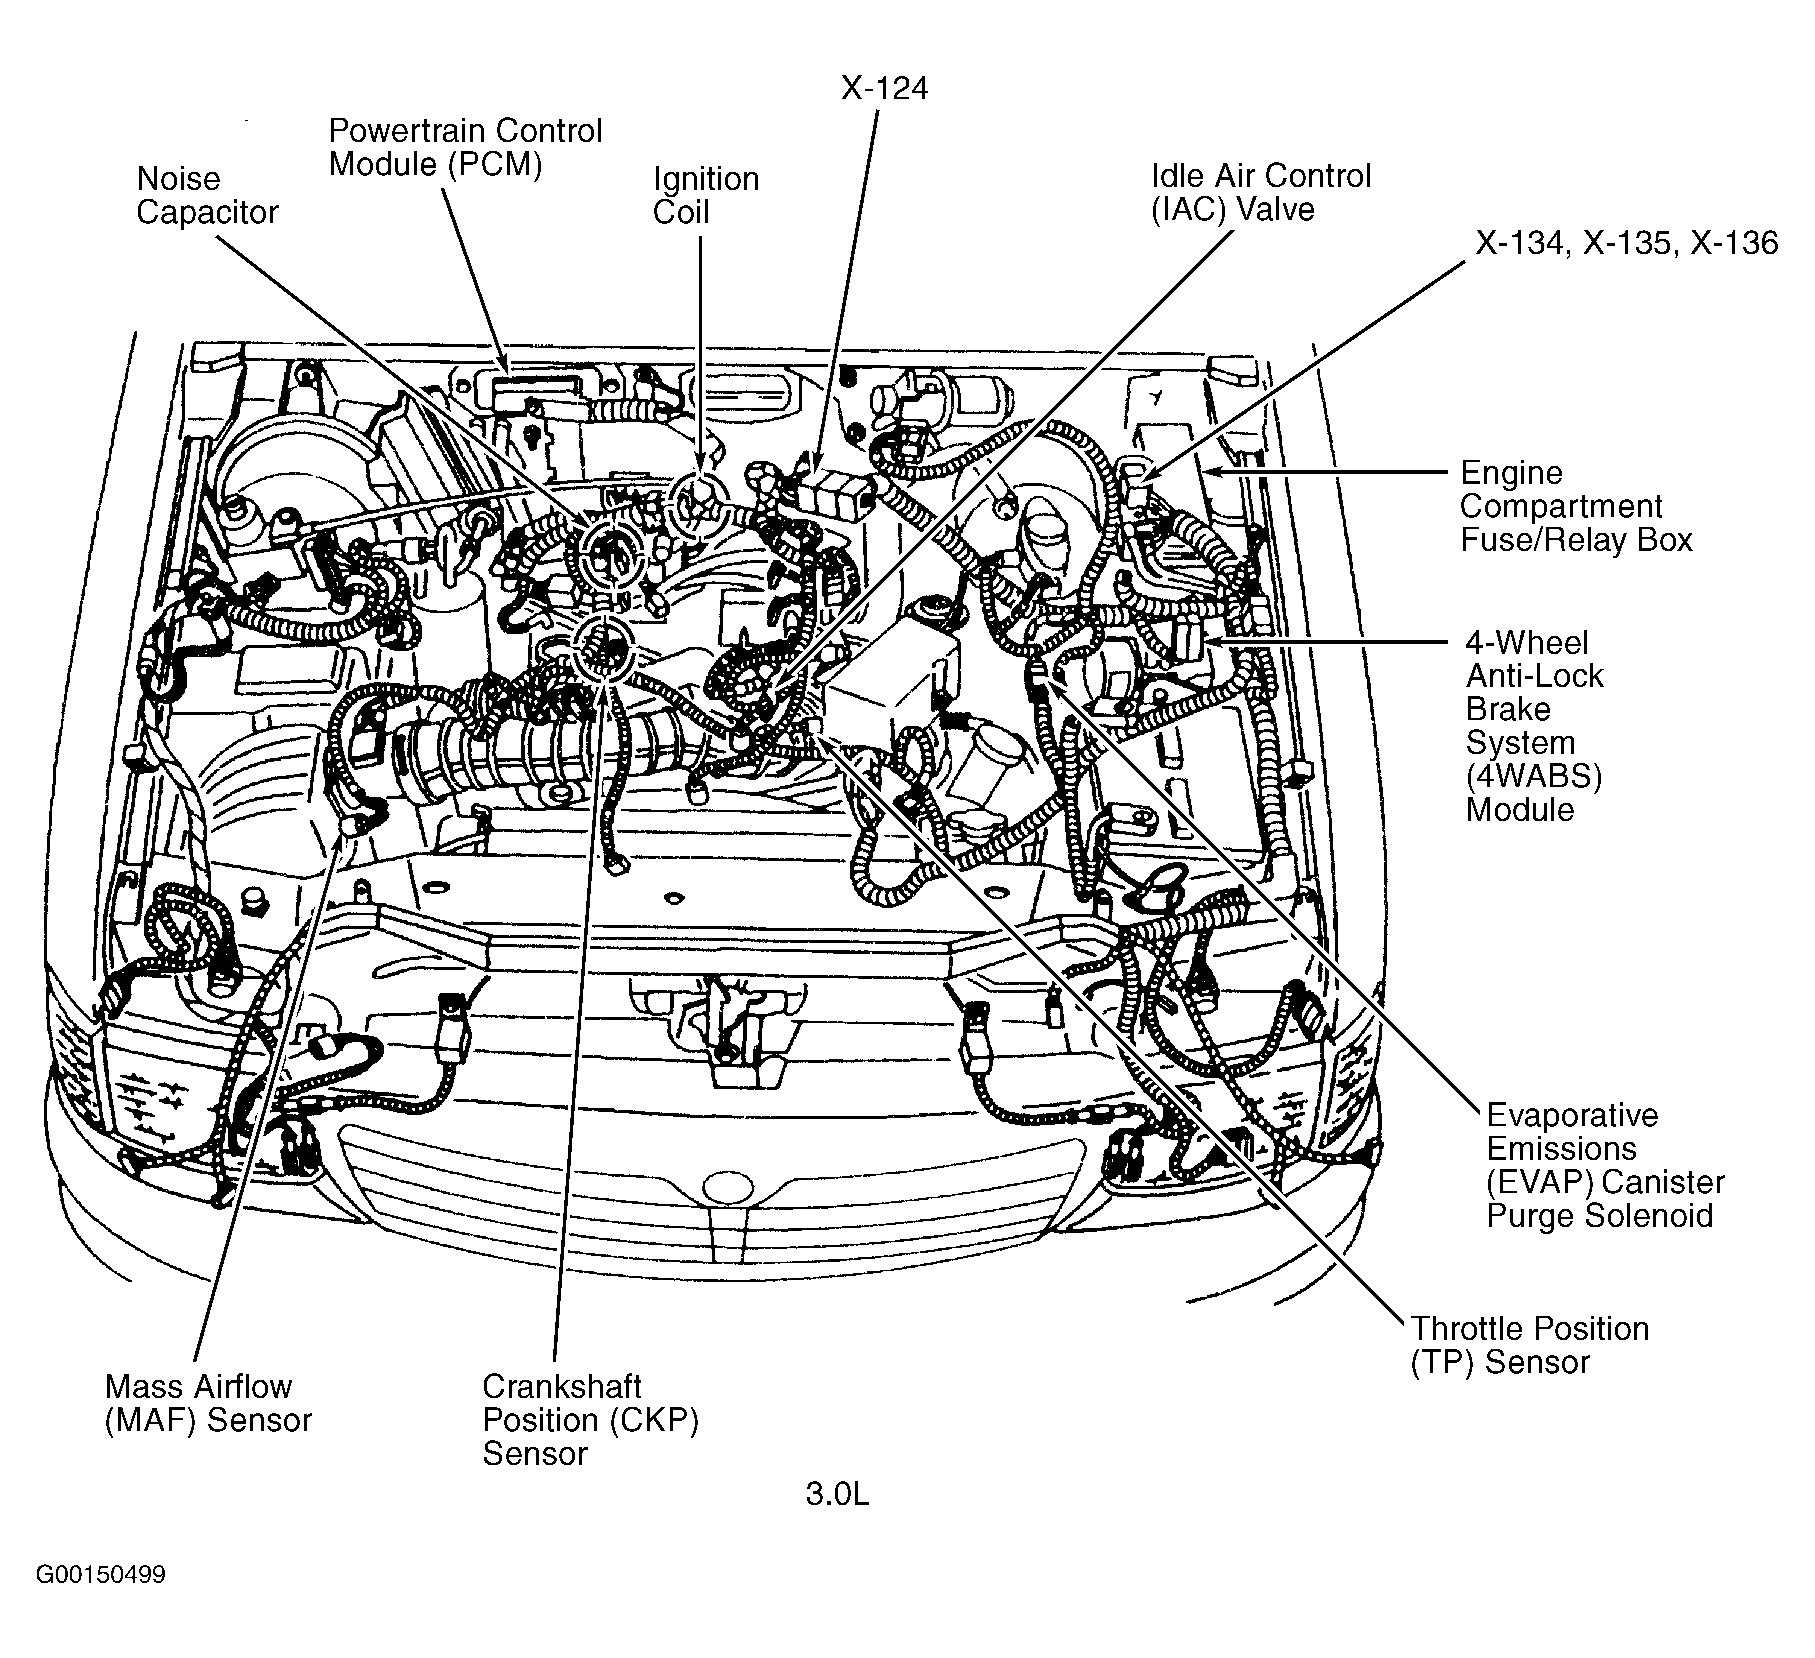 2010 Mazda 3 Engine Wiring 2004 Mazda 3 Engine Diagram 2005 toyota Tundra Electrical Of 2010 Mazda 3 Engine Wiring